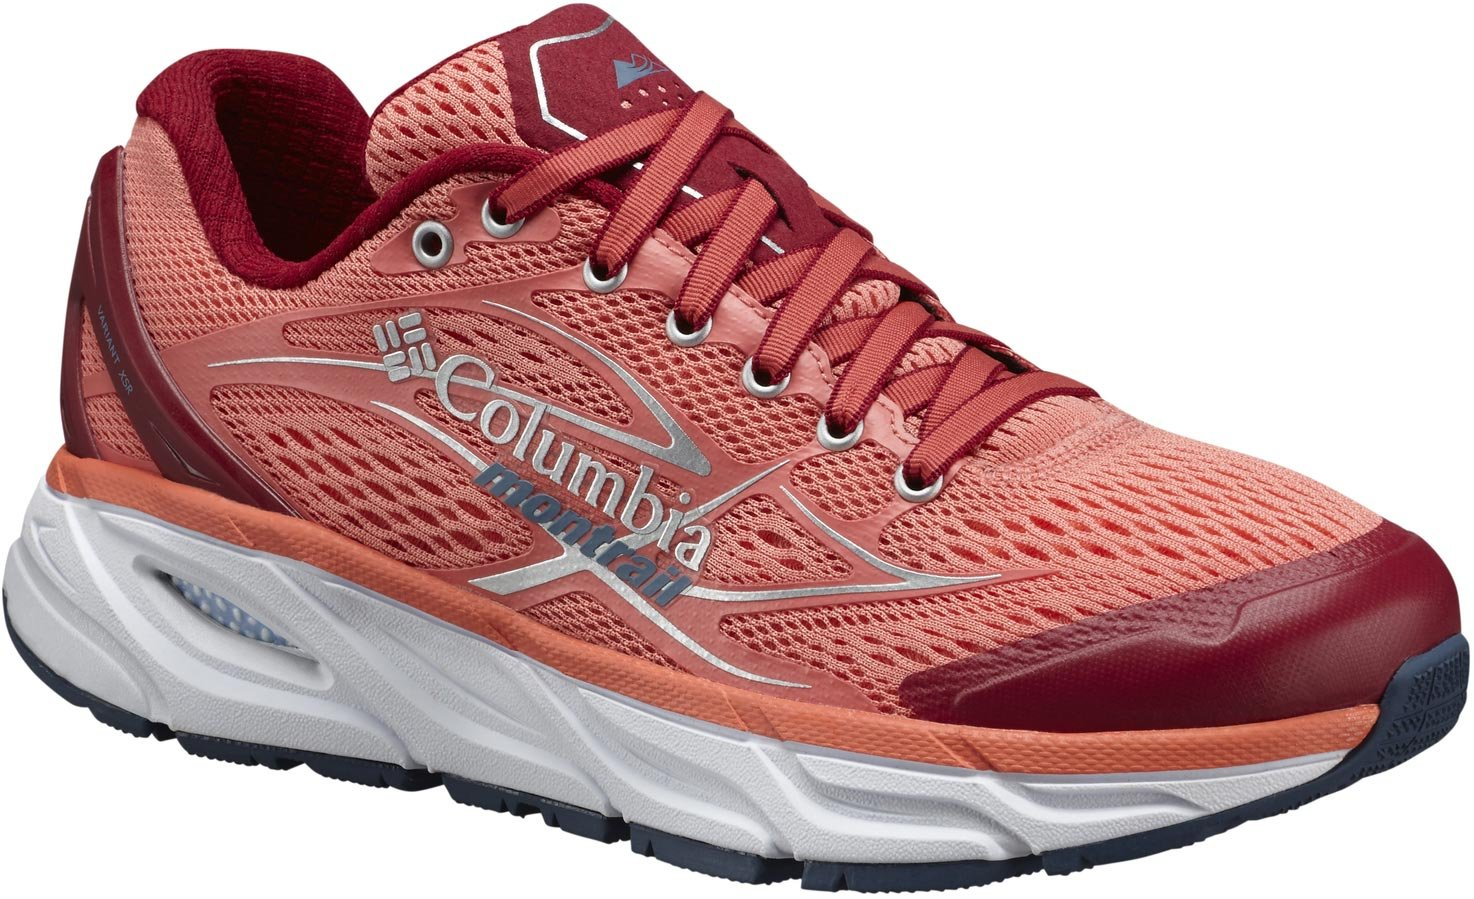 Columbia Montrail Variant XSR 41